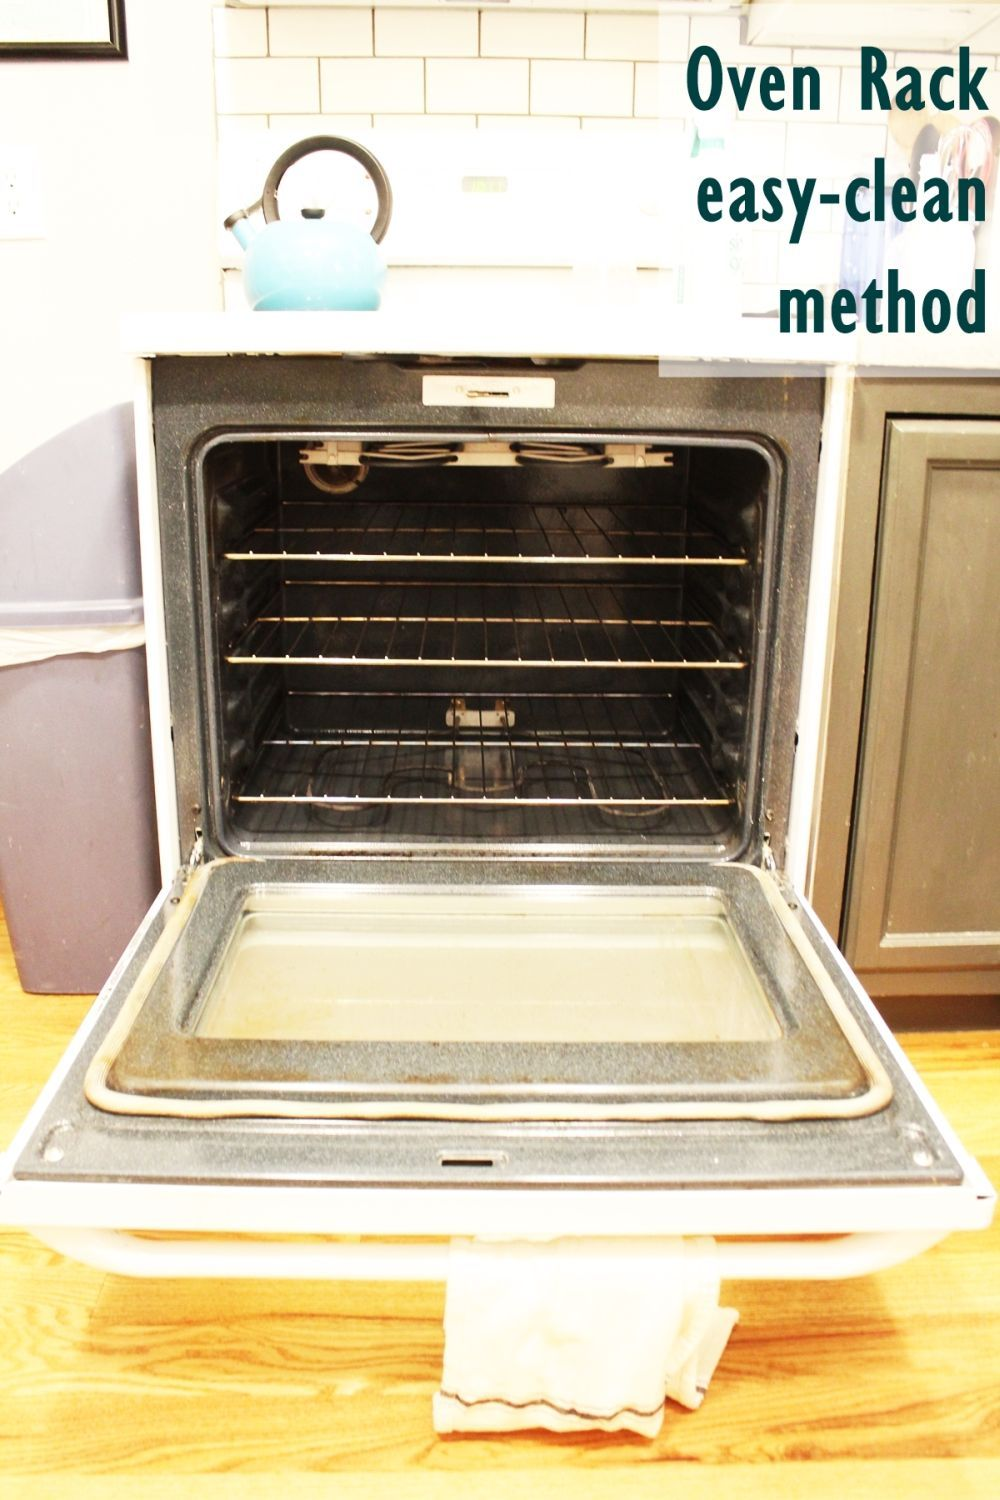 Cleaning Oven Racks Make Your Oven Food Safe Again